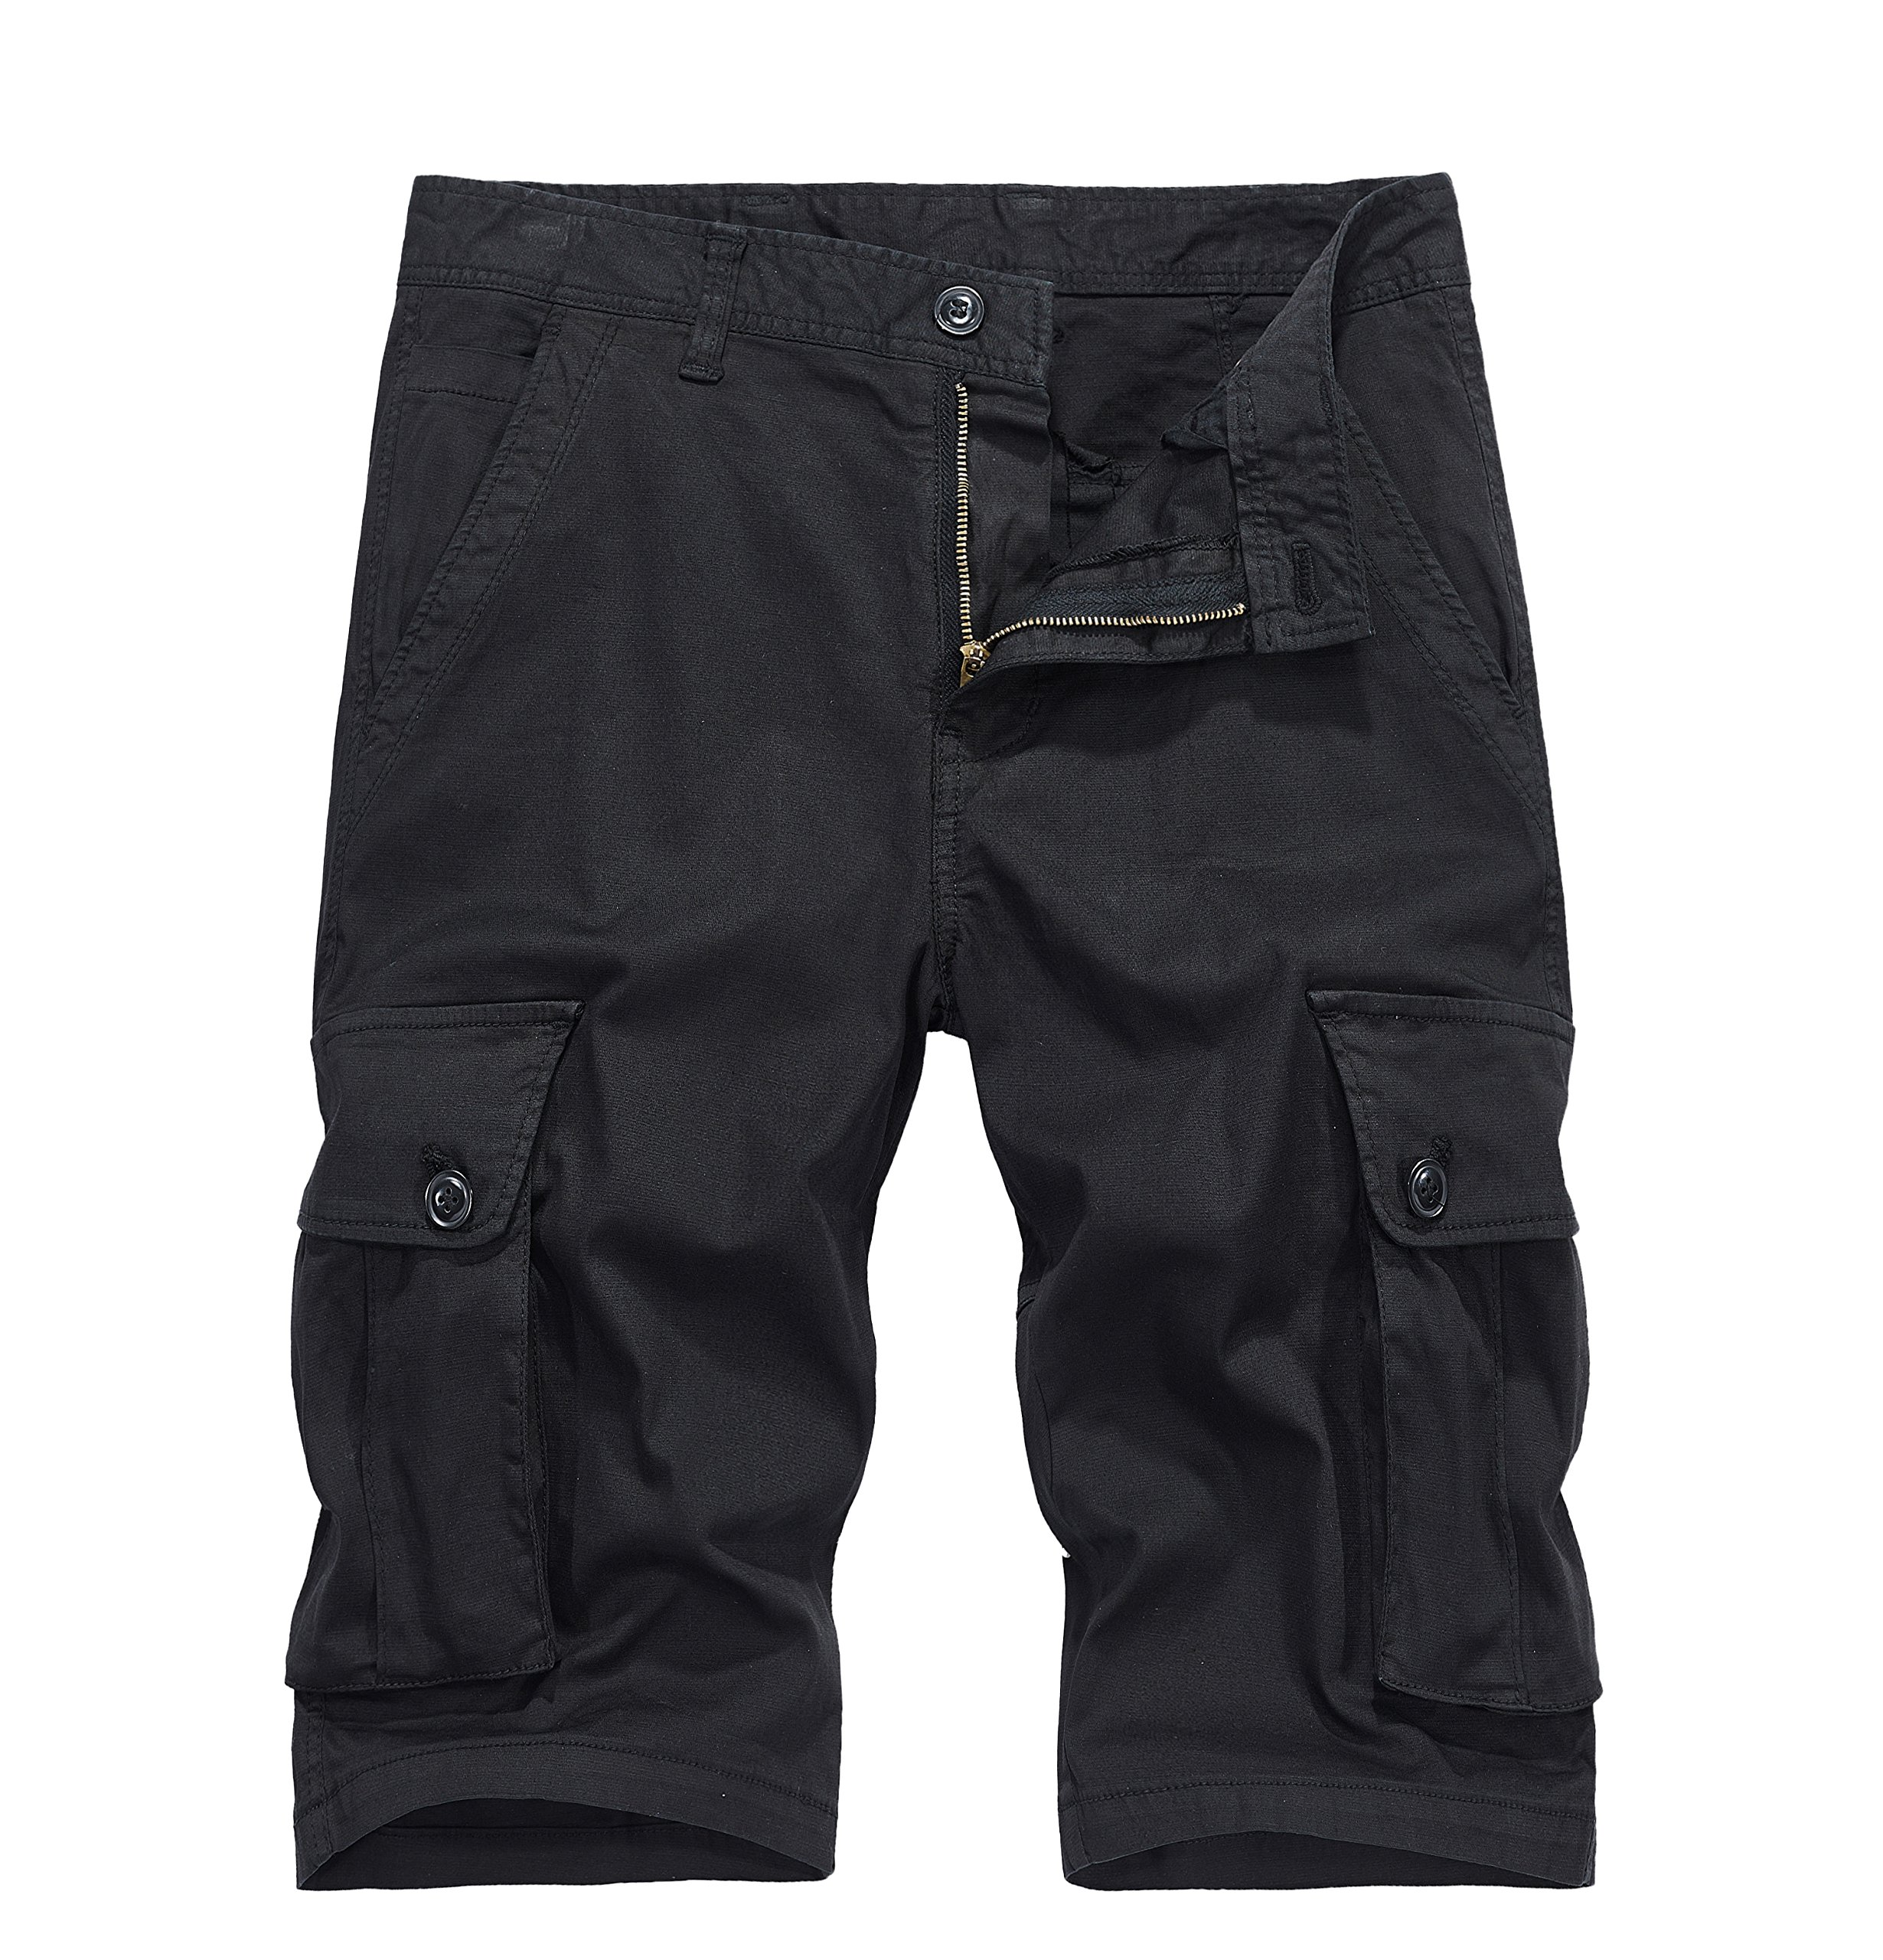 VAVE Mens Cargo Shorts Tactical Multiple Pocket Military Outdoor Wear Sports Beach Mountain Hiking Jogger Fishing Army Baggy Running Casual Big Size Loose Slim Fit Daily Leisure Summer (34, Black)